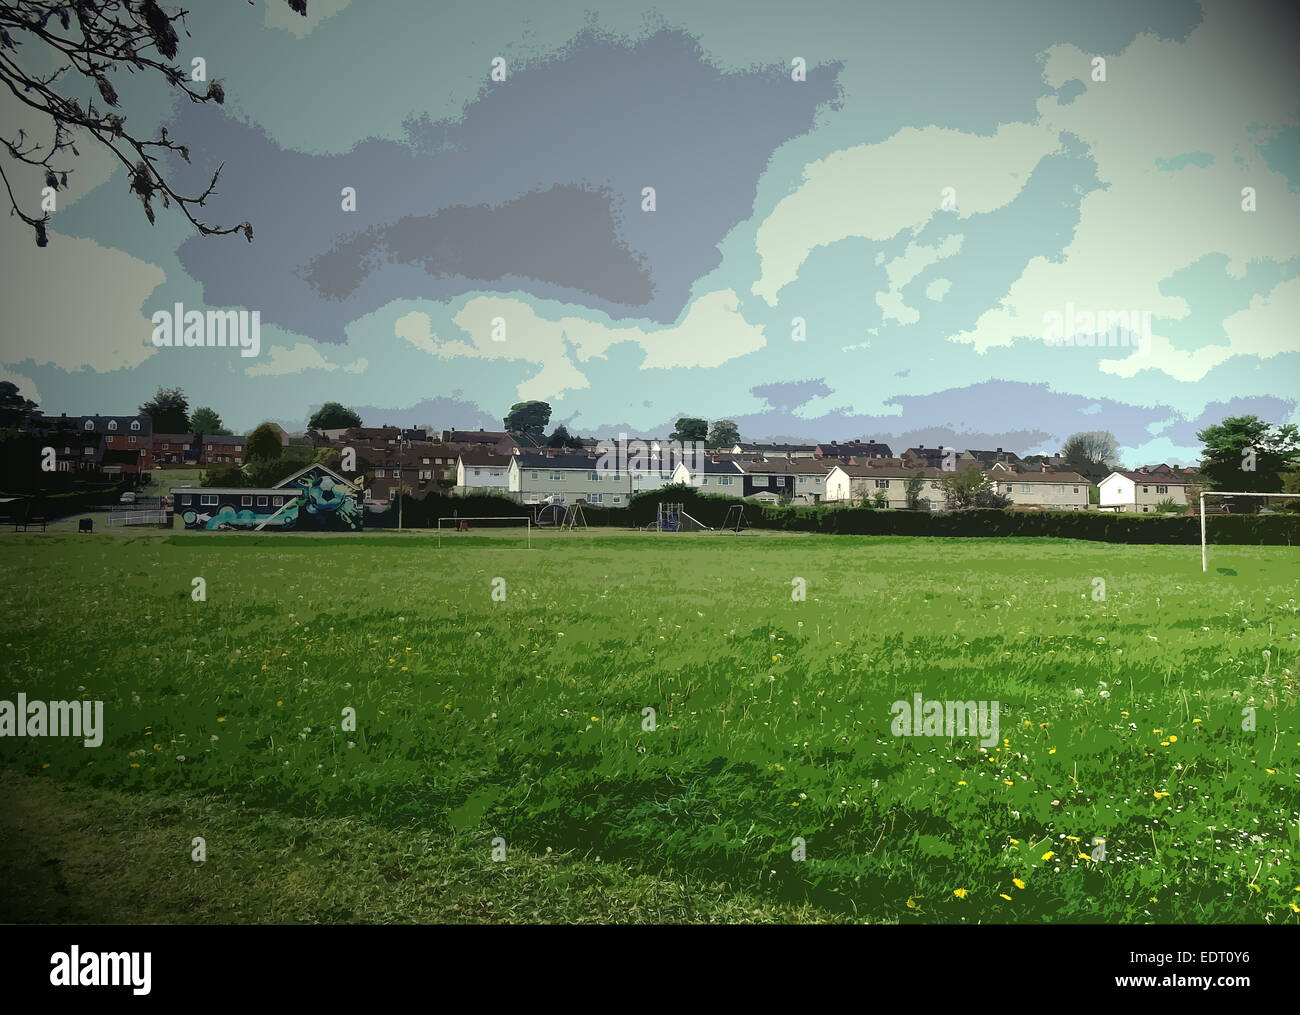 Playing Fields by the Mickley Estate, Football pitch and brightly decorated clubhouse building Stock Photo